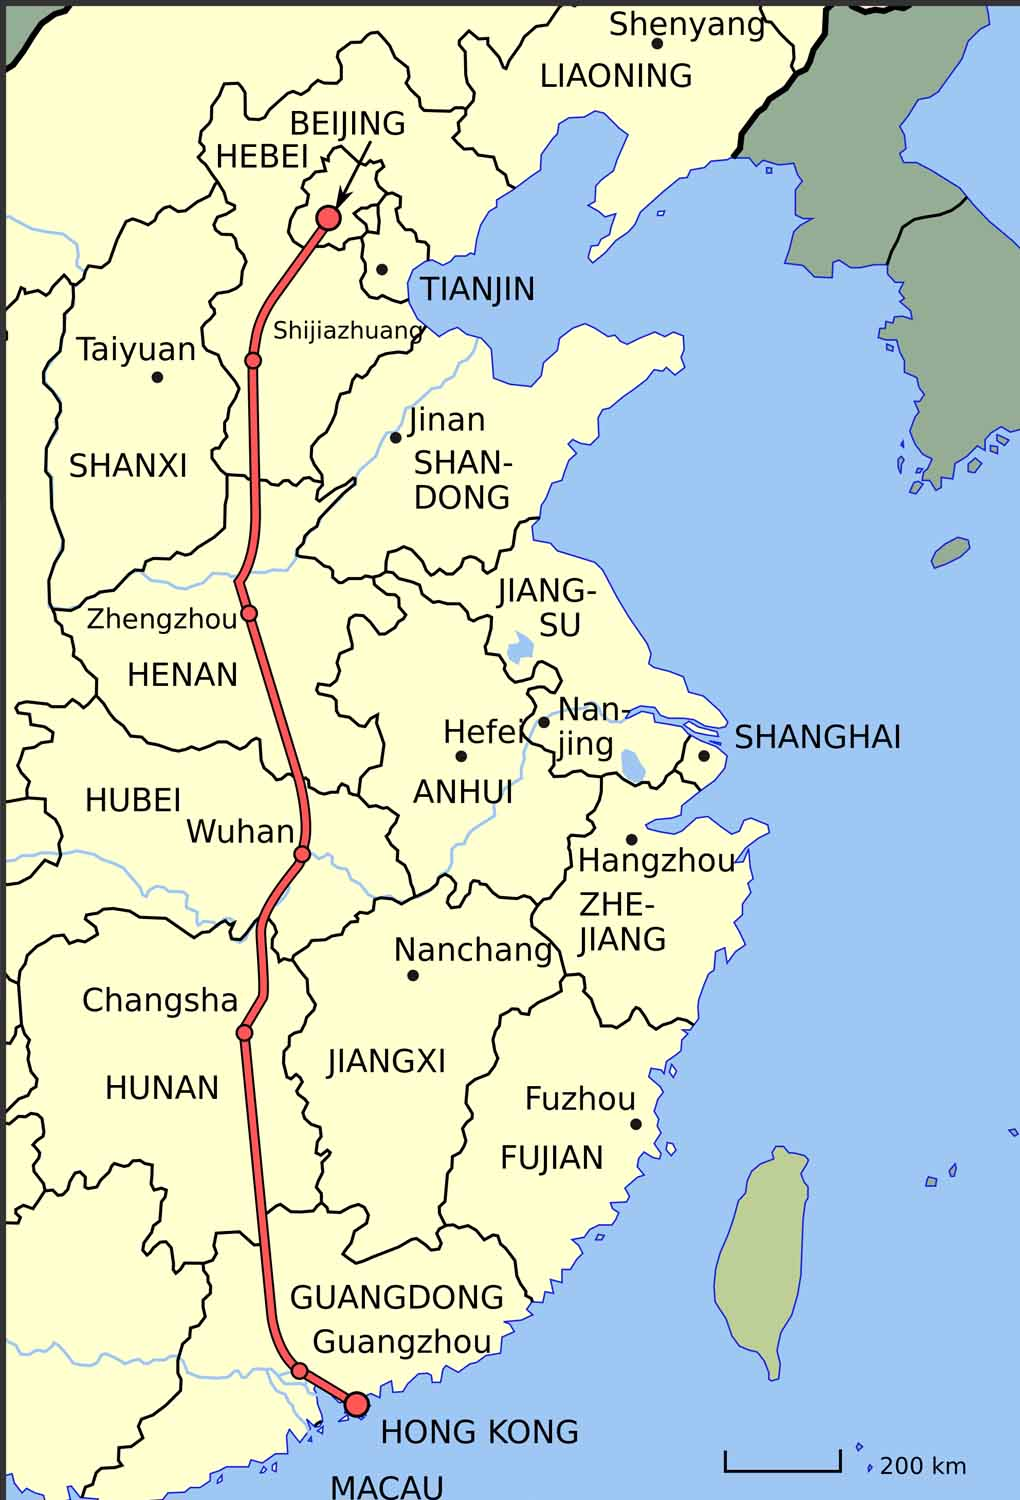 Beijing to hong kong train, Beijing to Hong Kong driving, Beijing to Hong Kong time, Beijing to Hong Hum train price, MTR Intercity schedule, Beijing to Hong Hum HK through Train MTR Intercity, Beijing to Hong Kong train online booking price, Beijing to hk high speed, How far is it from Beijing to Hong Kong